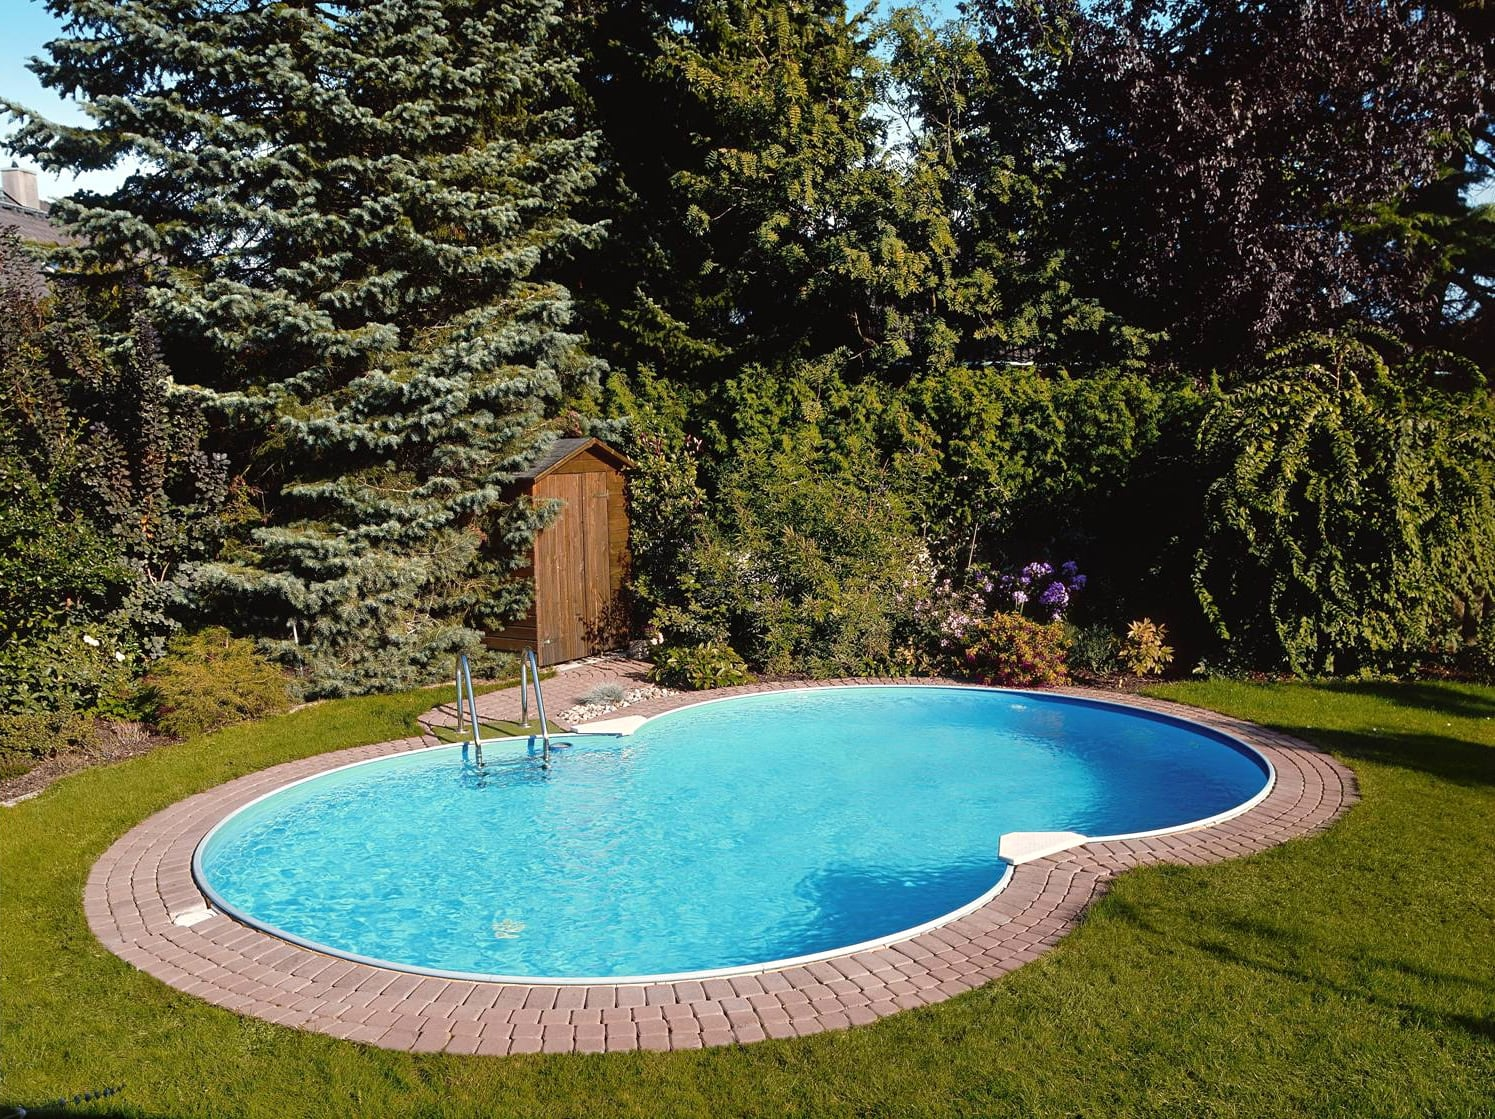 Piscineitalia kit piscina interrata in acciaio skyblue - Piscine piccole interrate ...